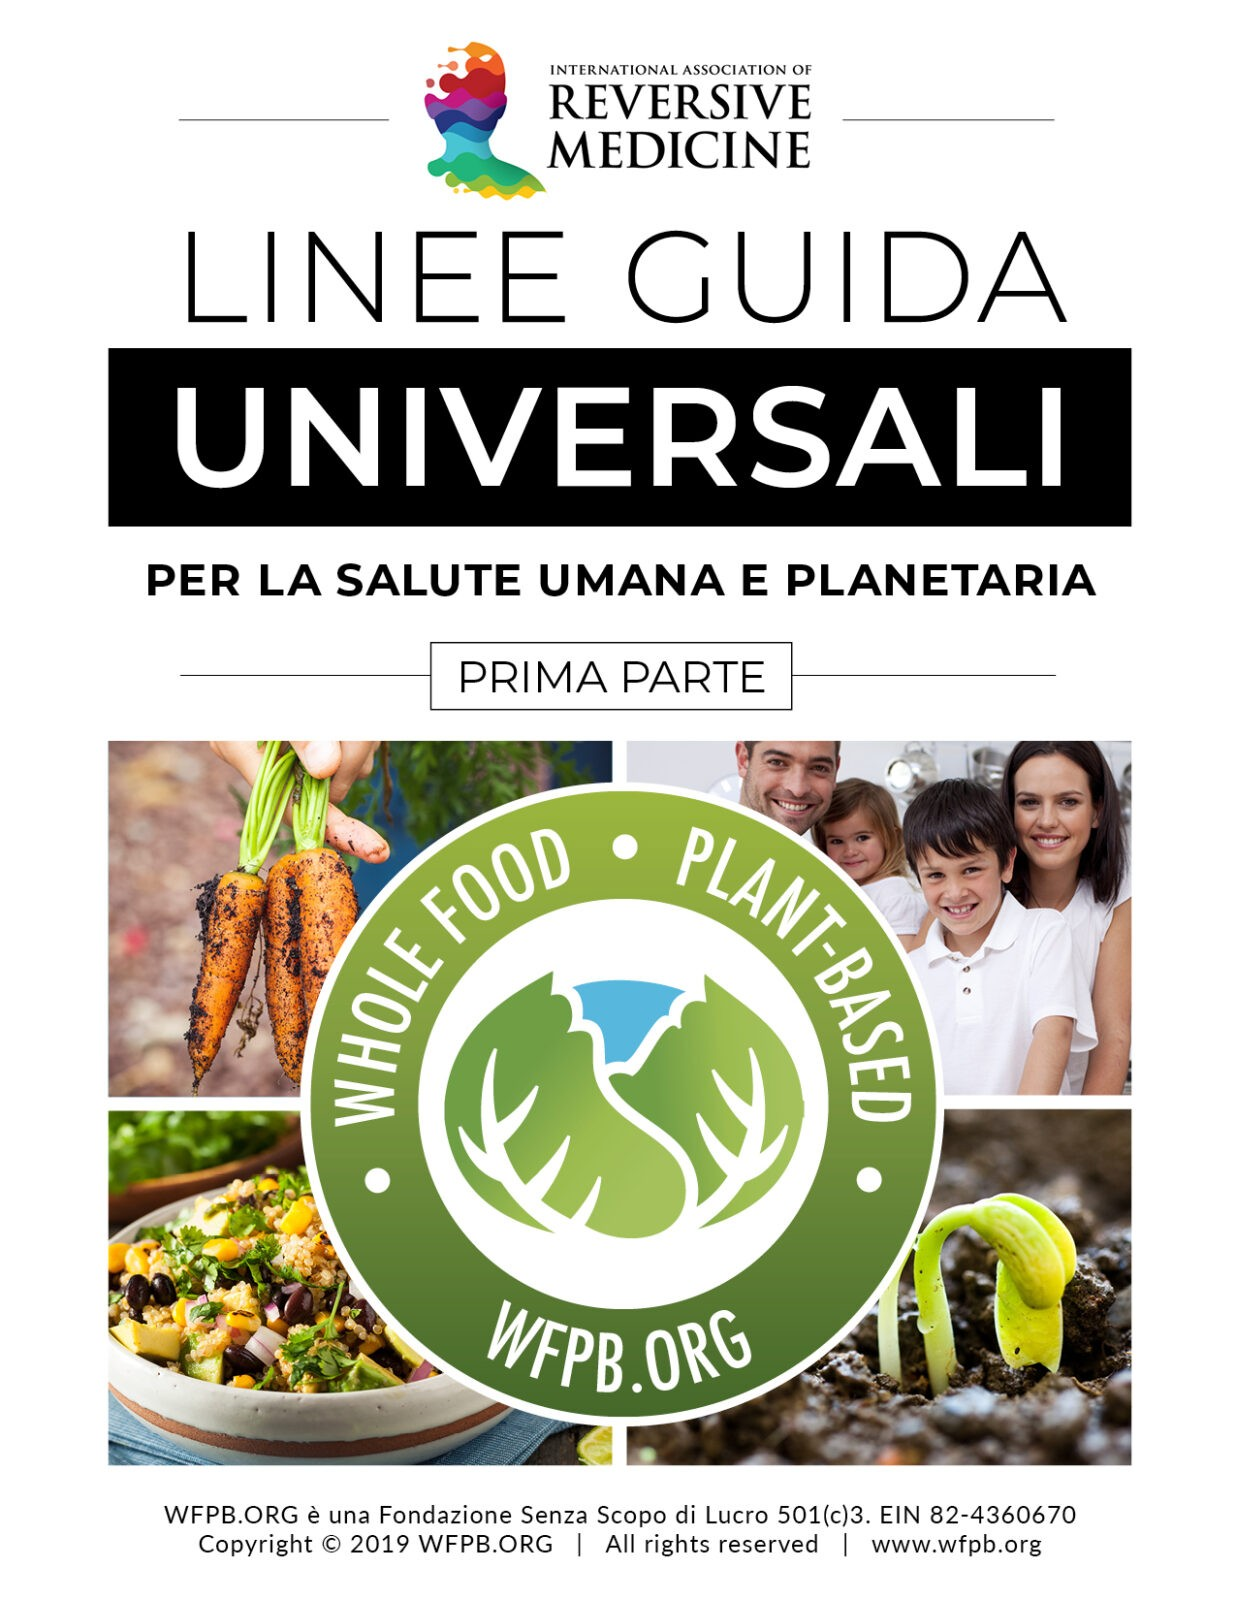 ITALIANO | UNIVERSAL GUIDELINE FOR HUMAN AND PLANETARY HEALTH | WFPB.ORG